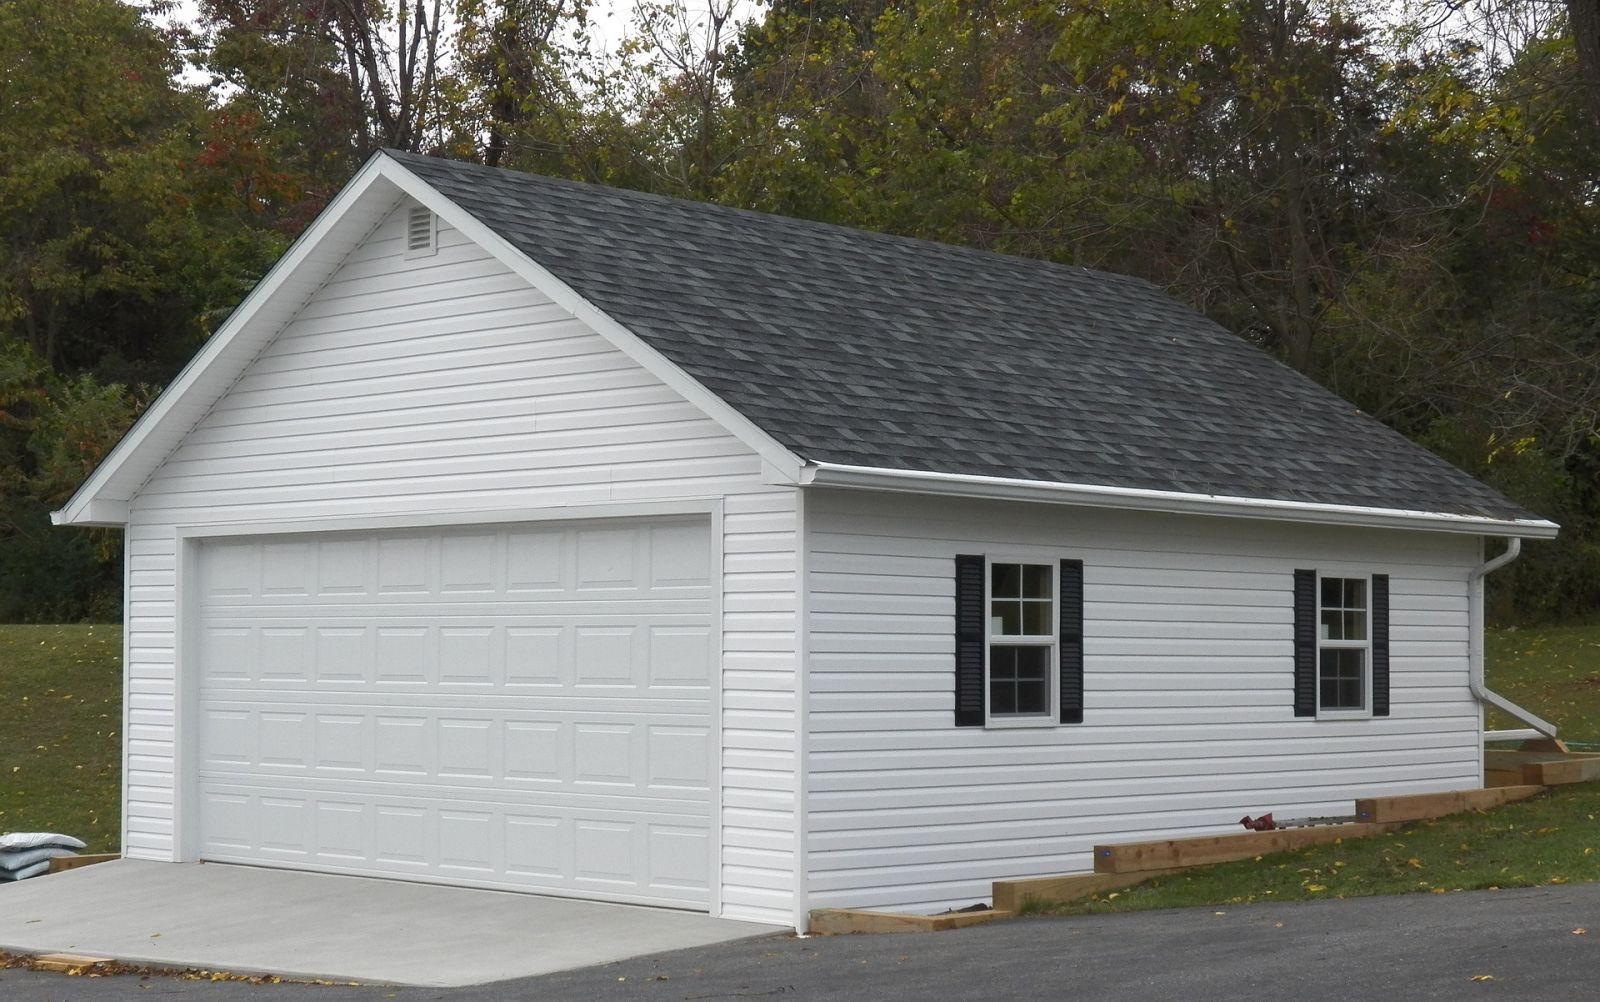 homes of with value new door garage improve adds a curb to overheadtampa your benefits appeal